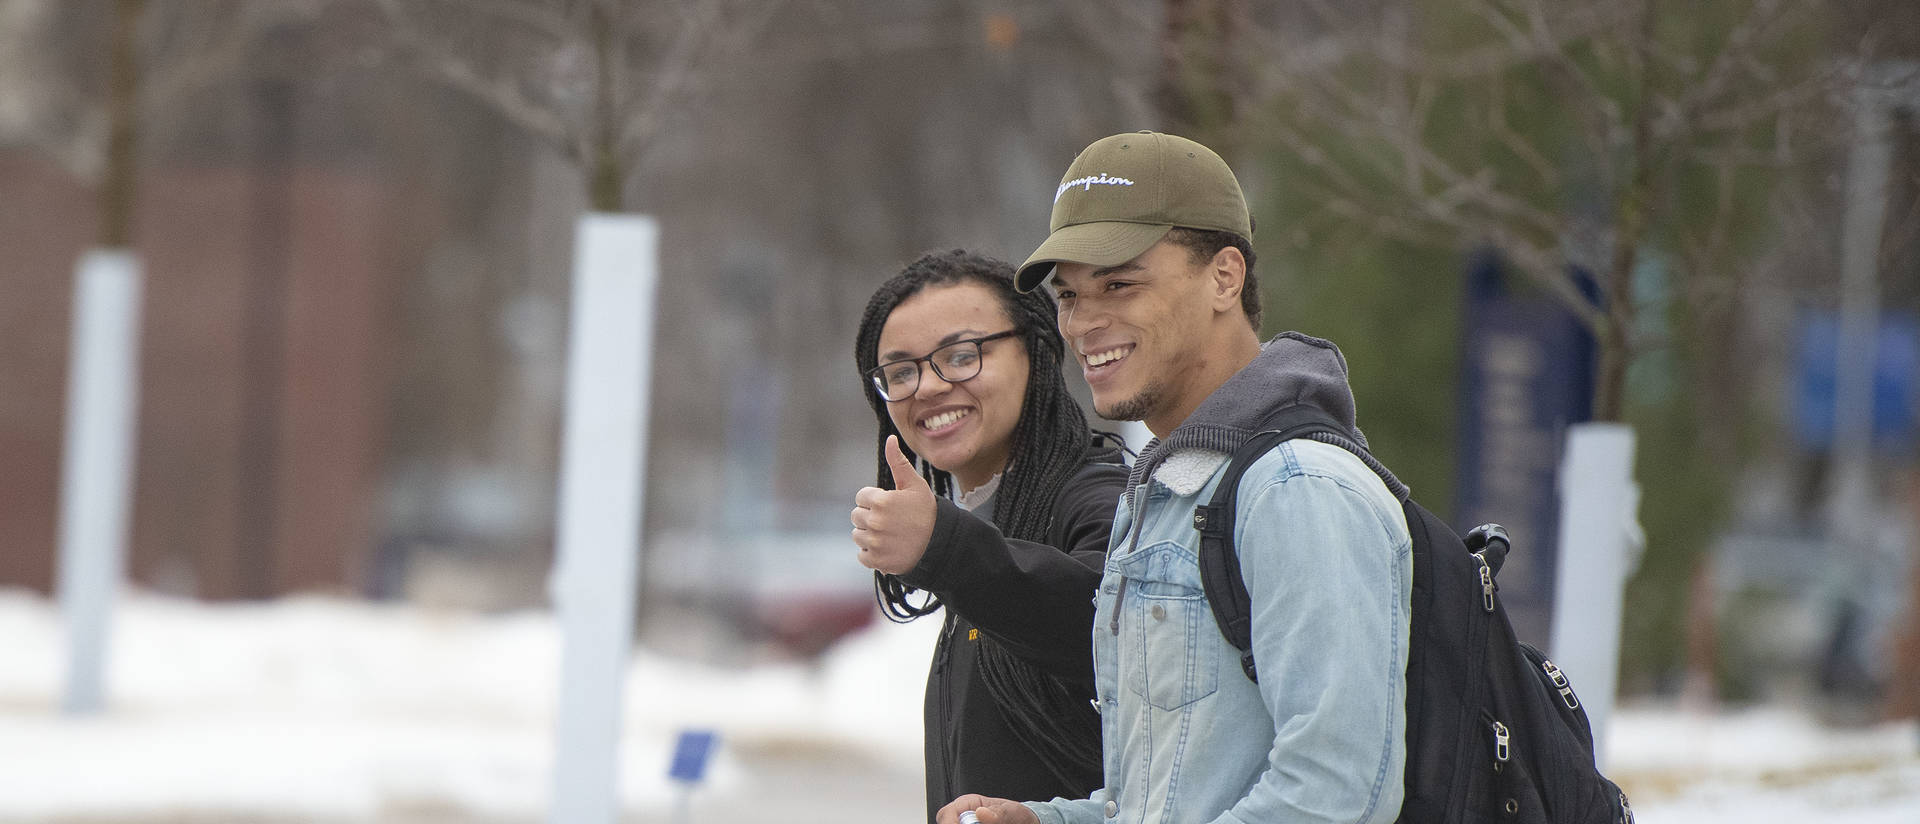 UW-Eau Claire students walk to class during a winter day.